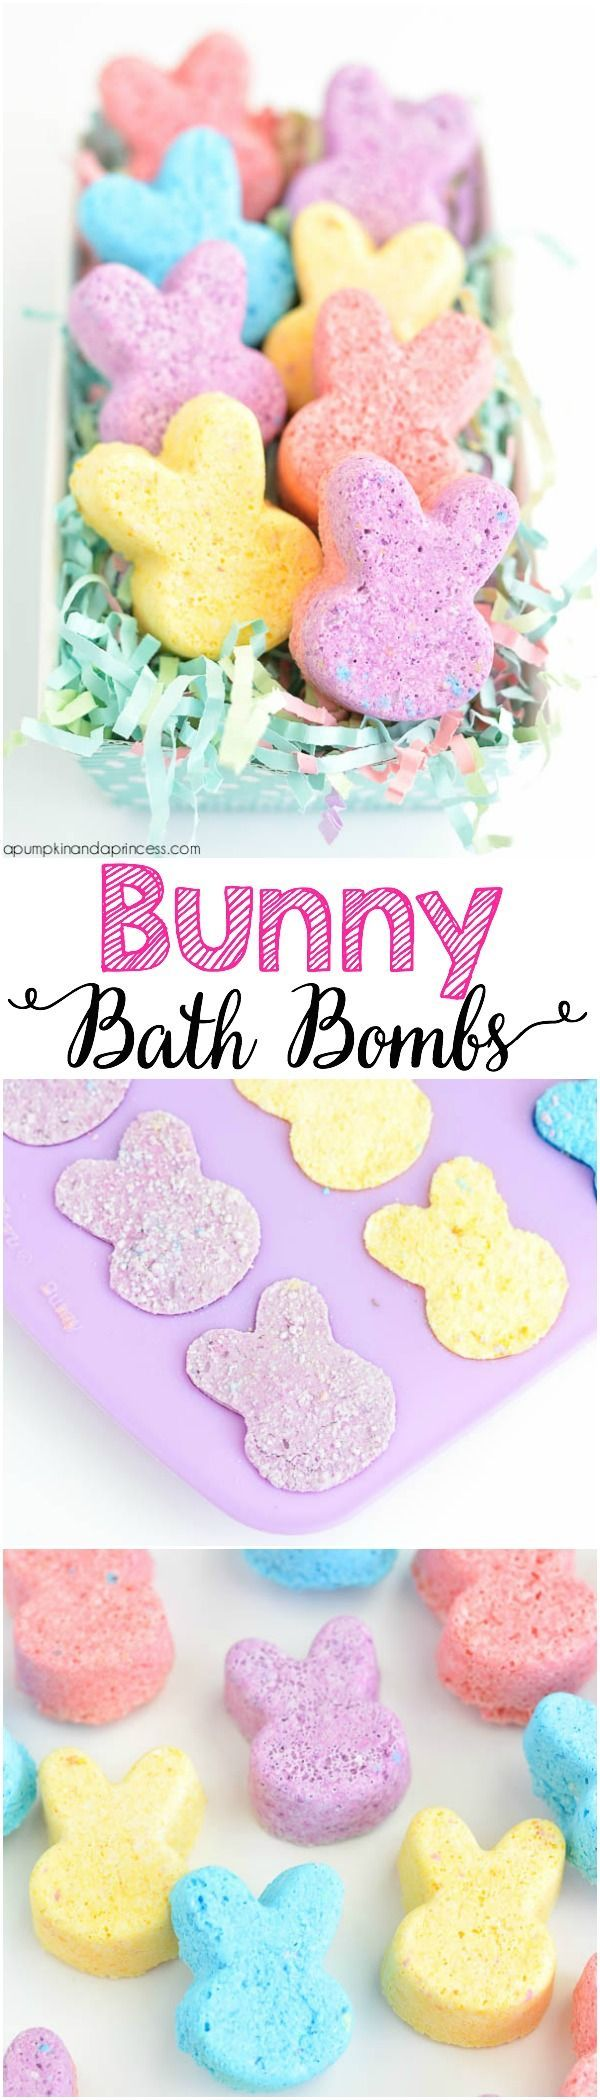 Diy bunny bath bombs from a pumpkin and a princess easter diy spa recipes would be cute in exact peep shape diy bunny bath bombs negle Images